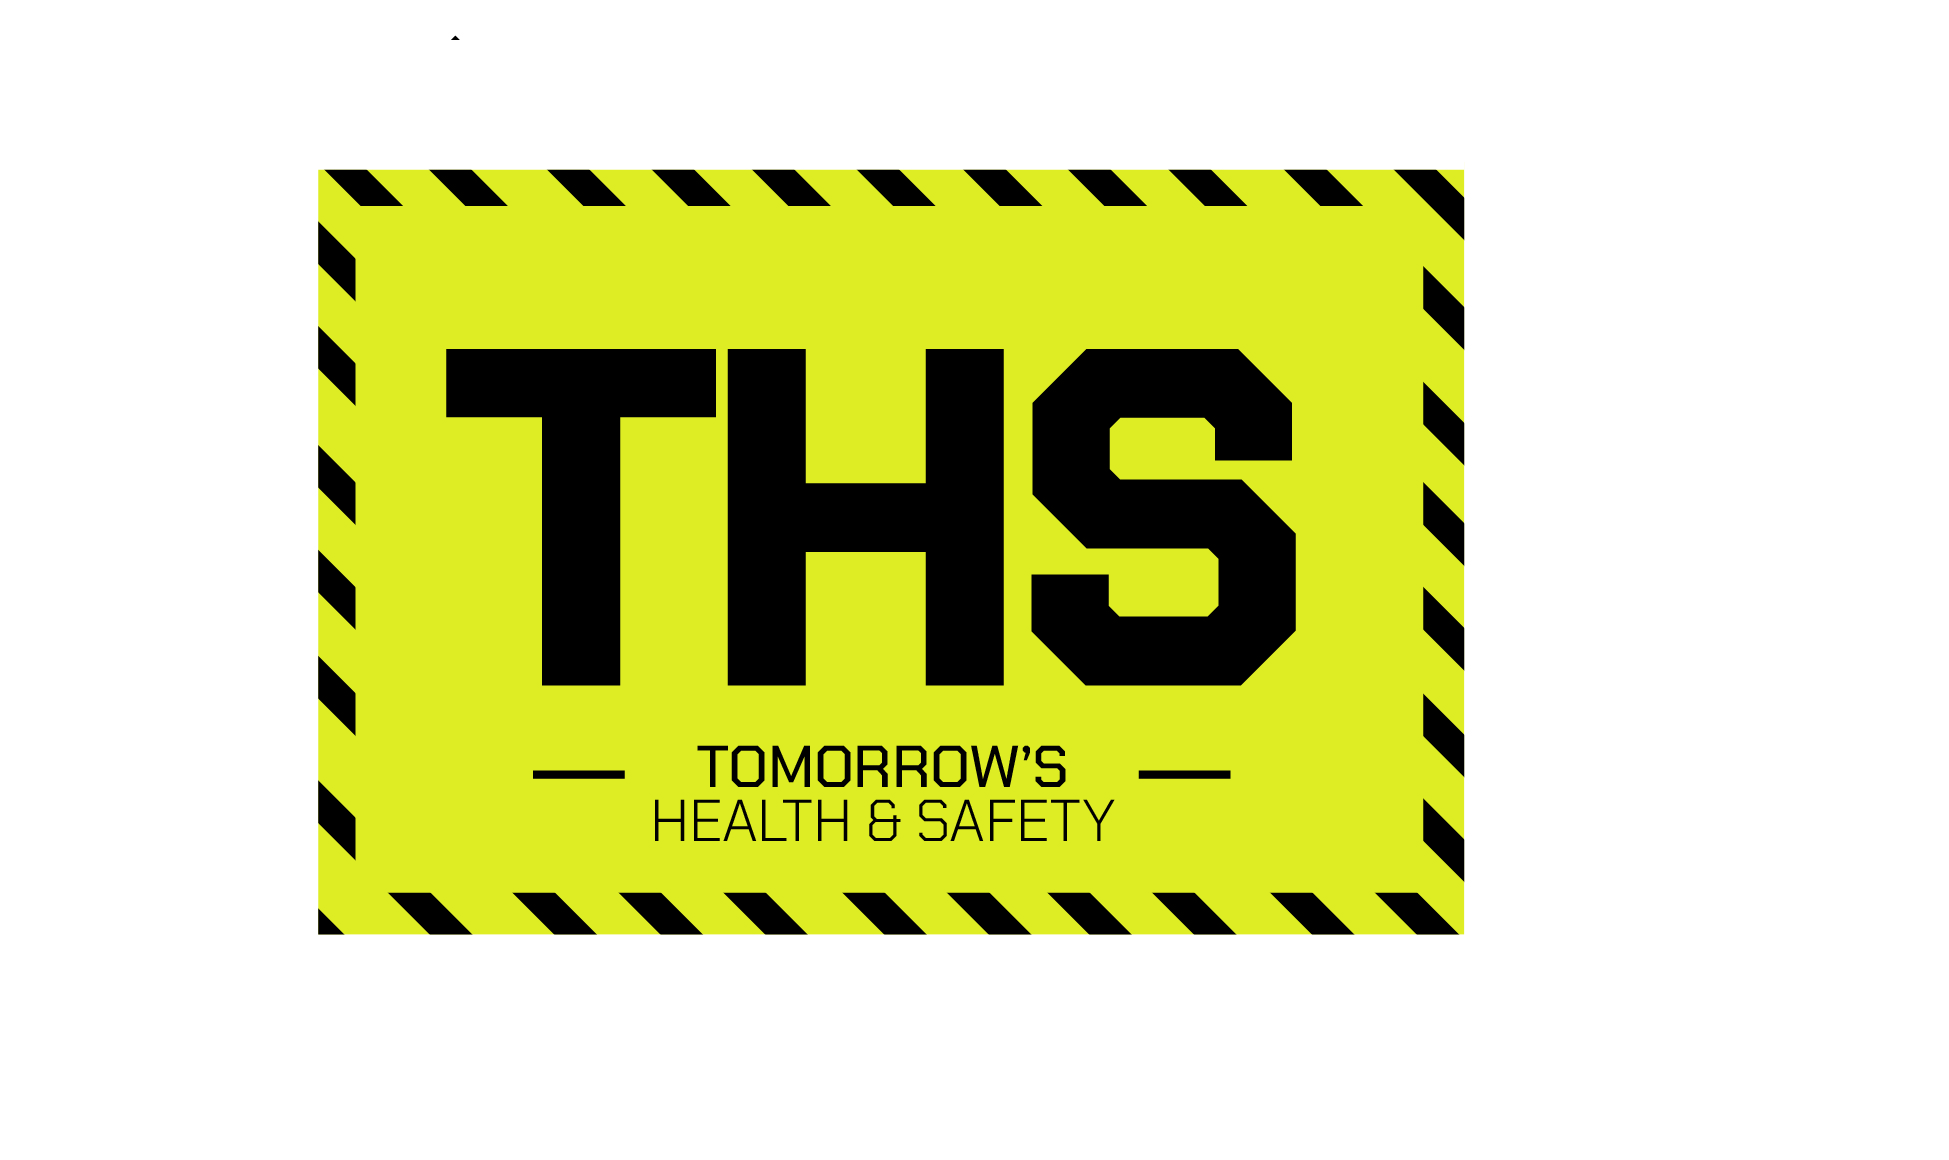 What is Tomorrow's Health & Safety?